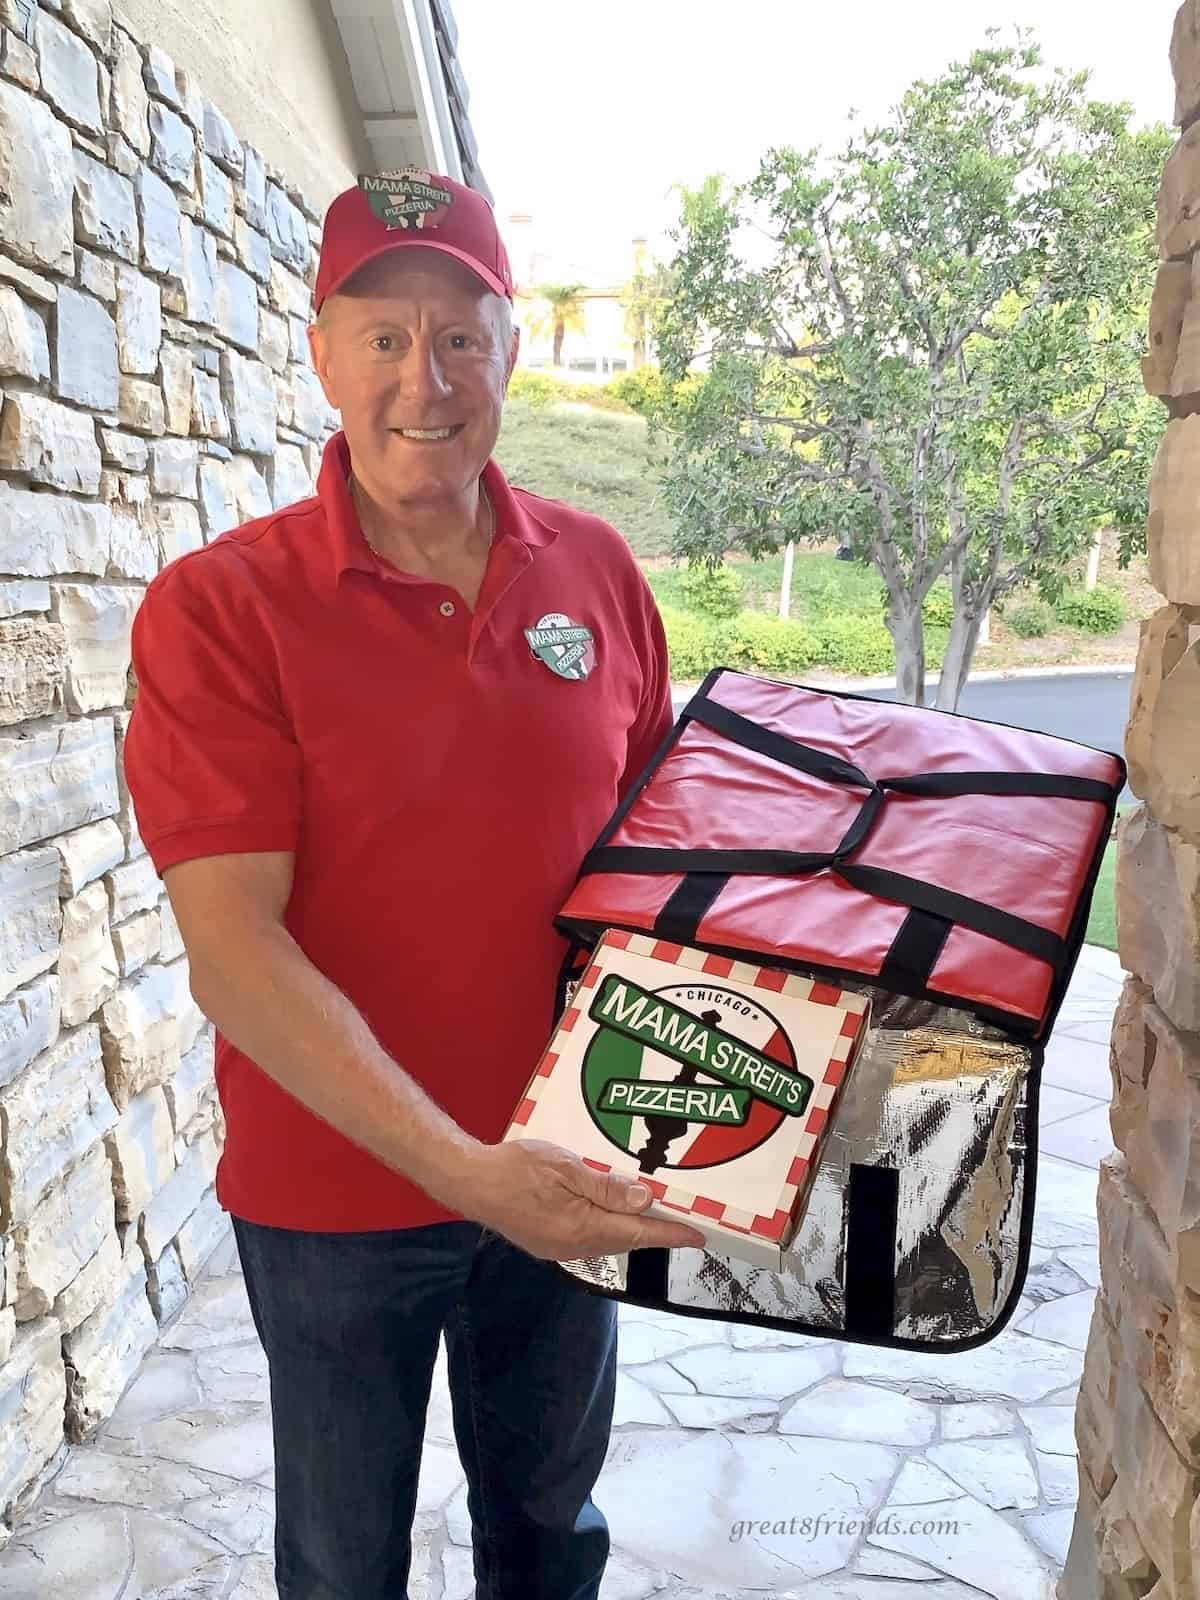 A man at a front door delivering pizza from a pizza bag.